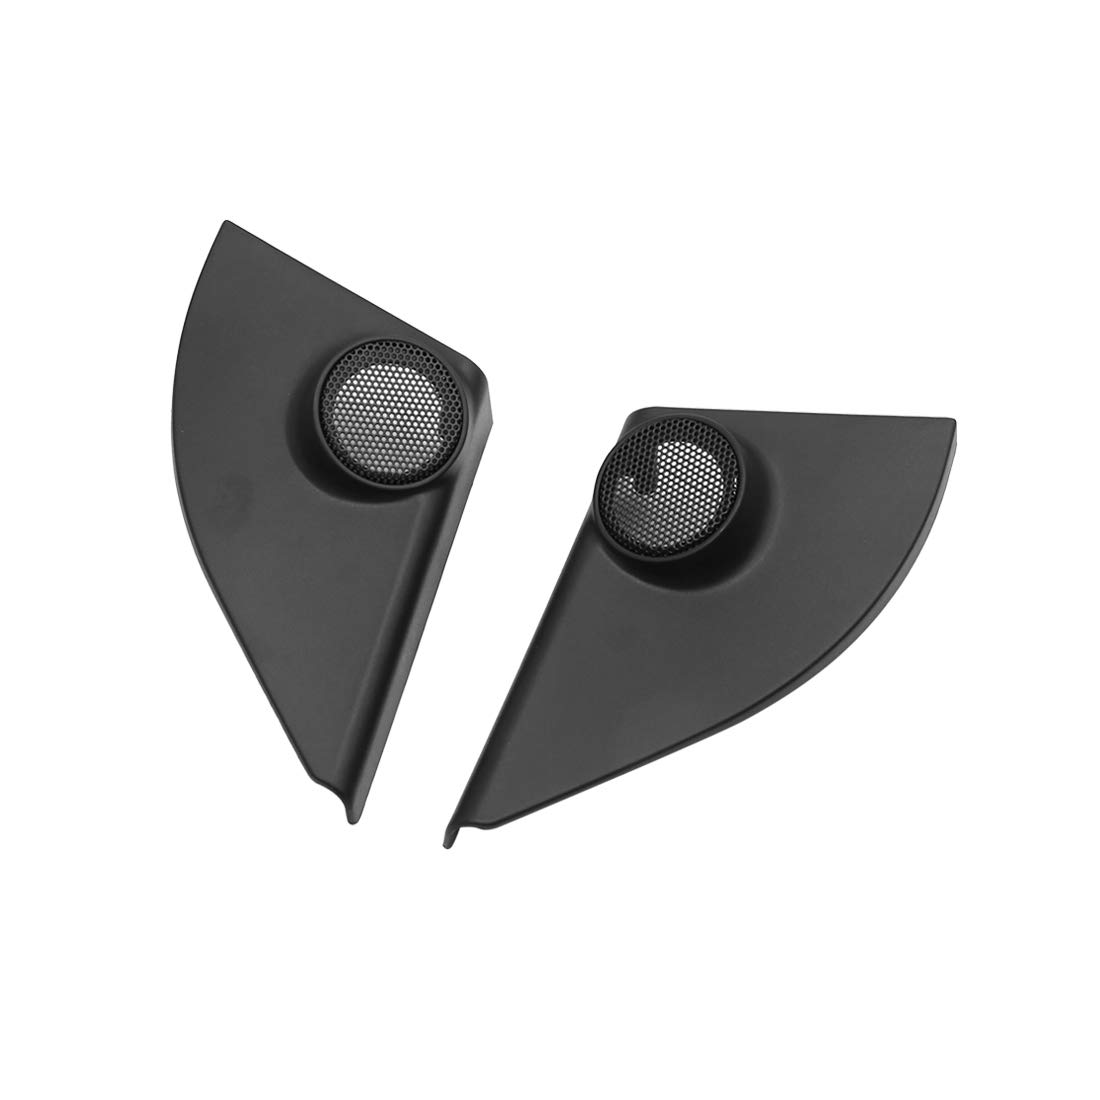 uxcell Pair Black Car Speaker Trim Cover Tweeter Protector for 2014-2017 Toyota RAV4 by uxcell (Image #2)